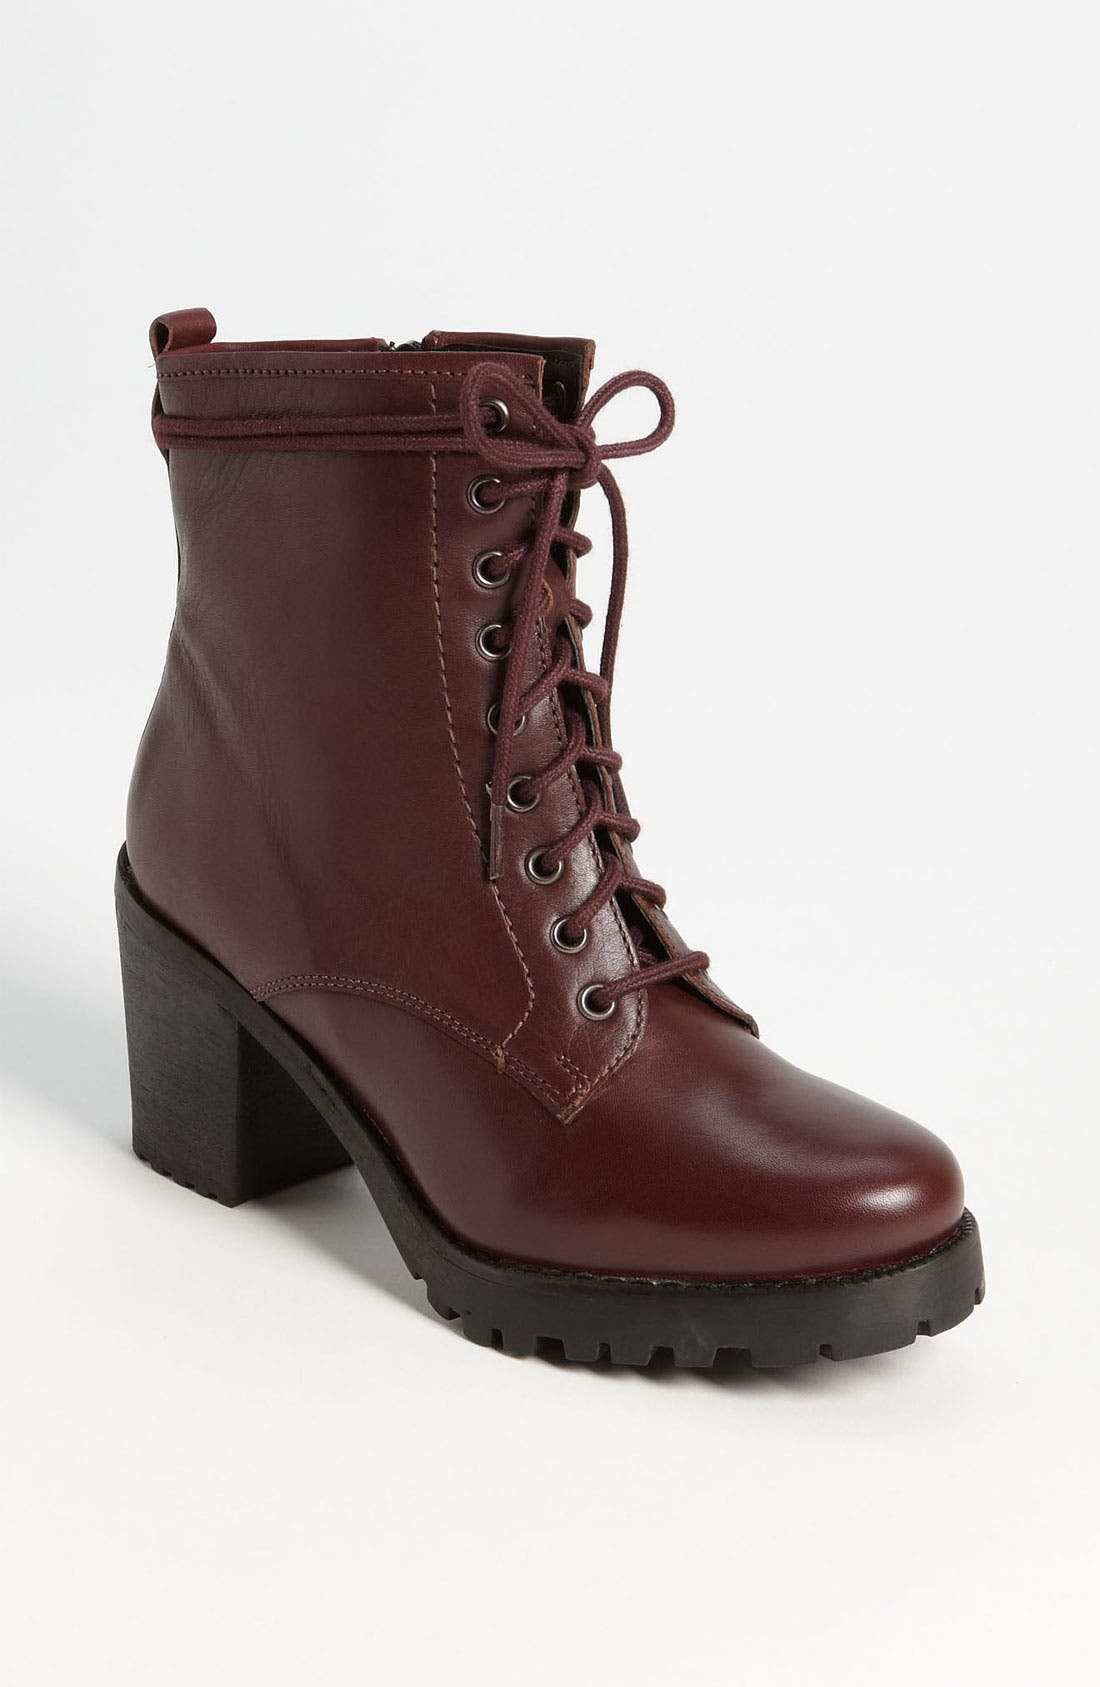 Alternate Image 1 Selected - Topshop 'Ample' Boot